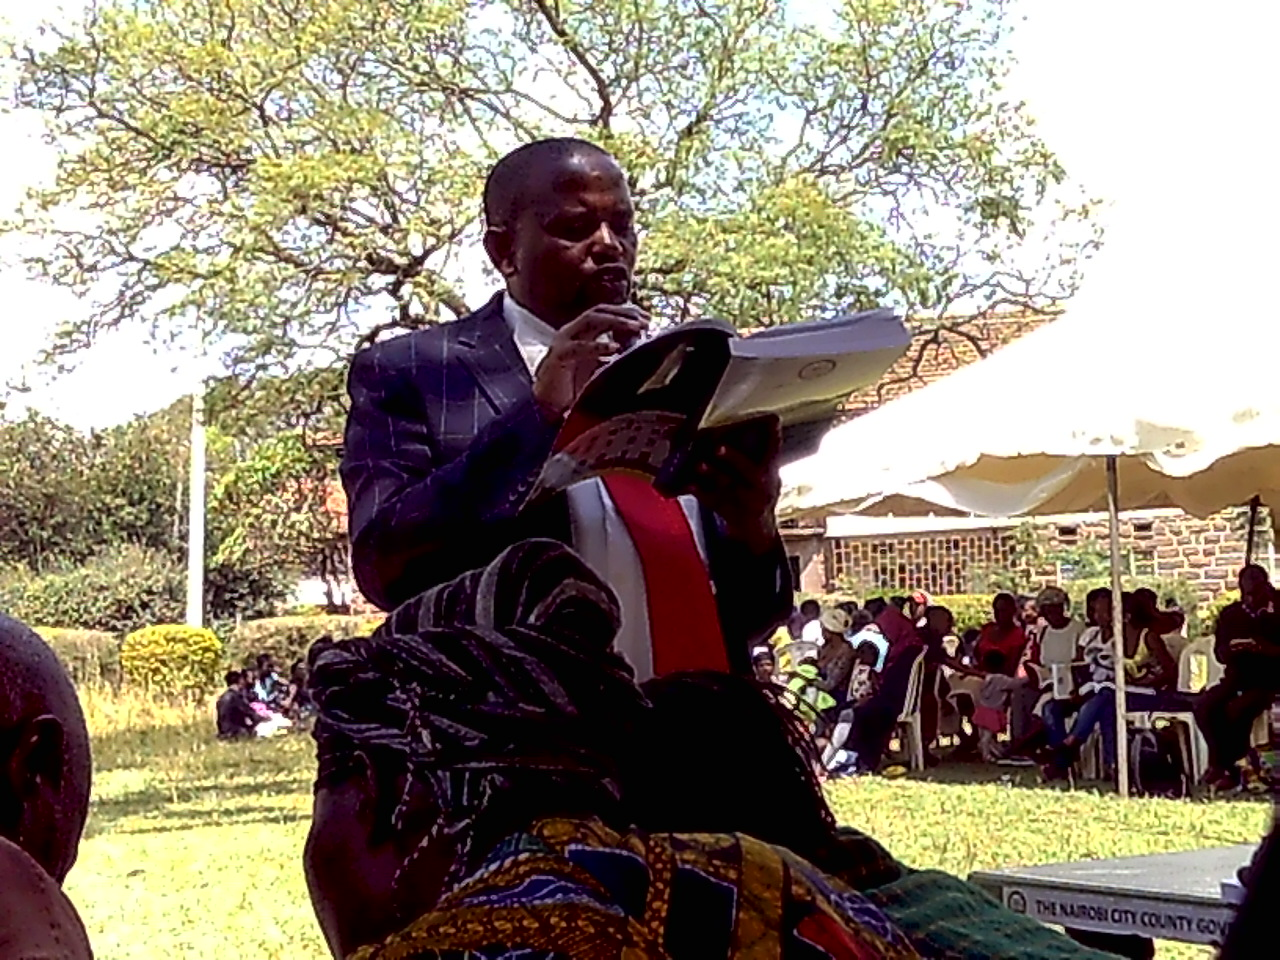 Nairobi County Official presiding over the public participation forum at Joseph Kangethe Woodley